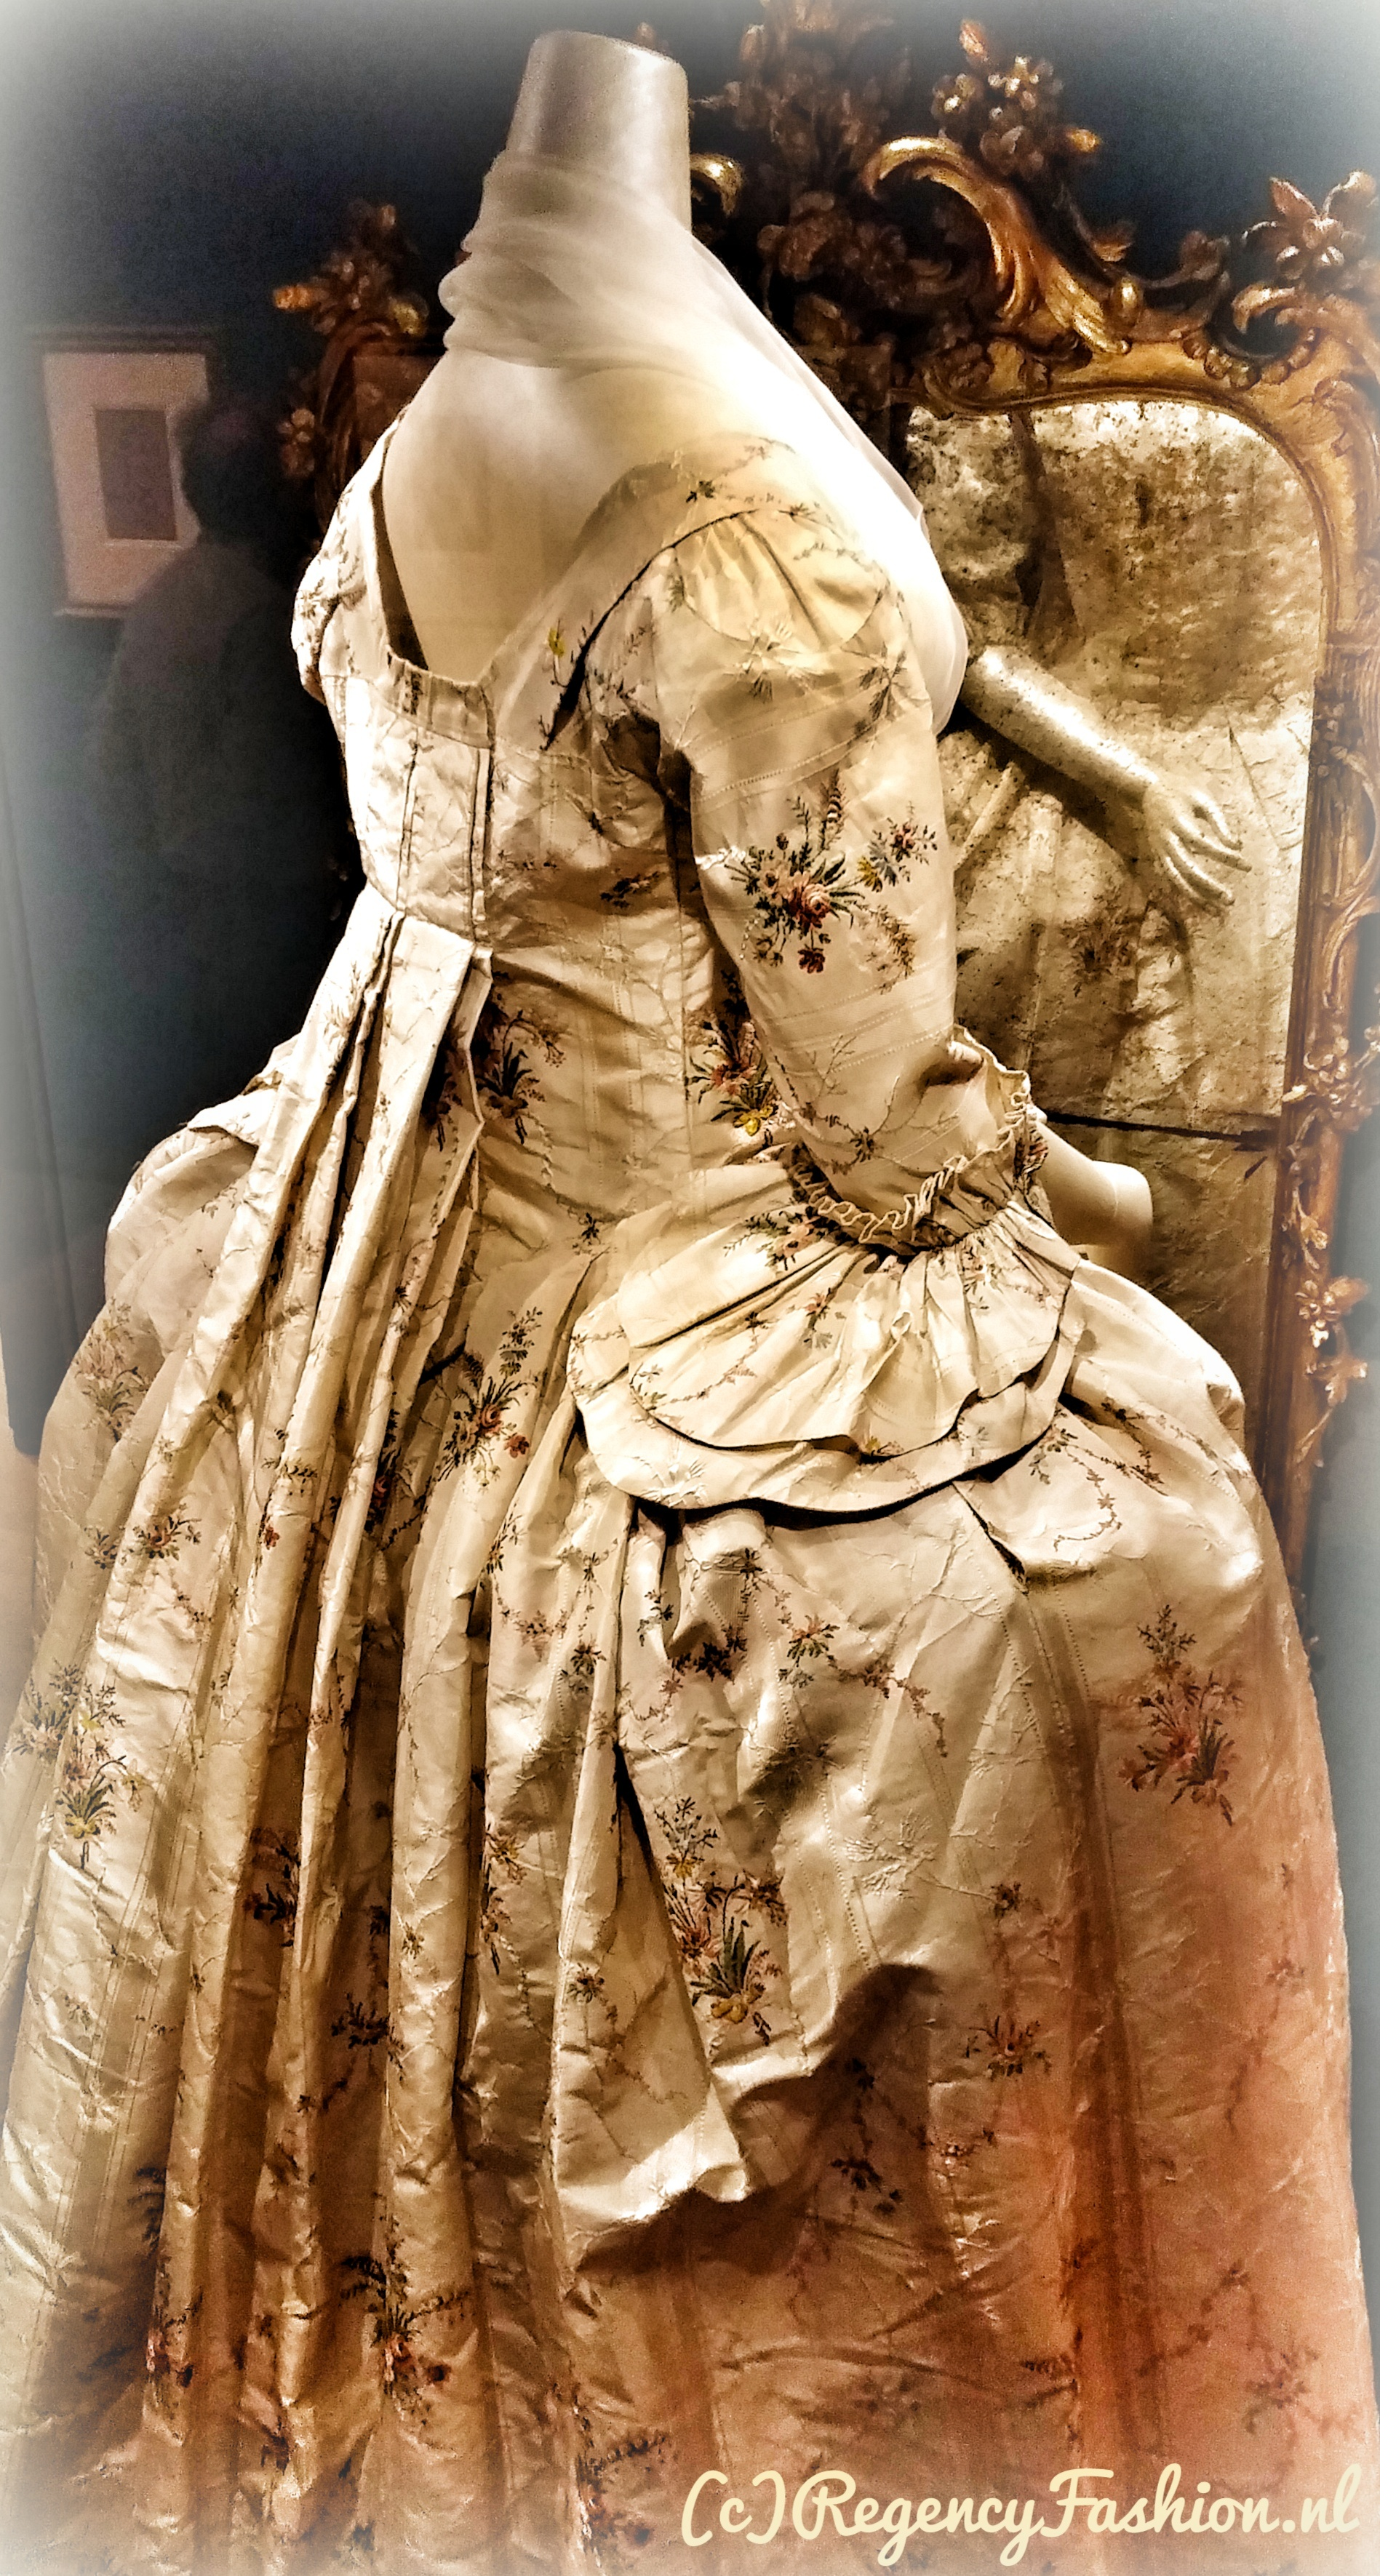 Watteau exhibition | Regency Fashion